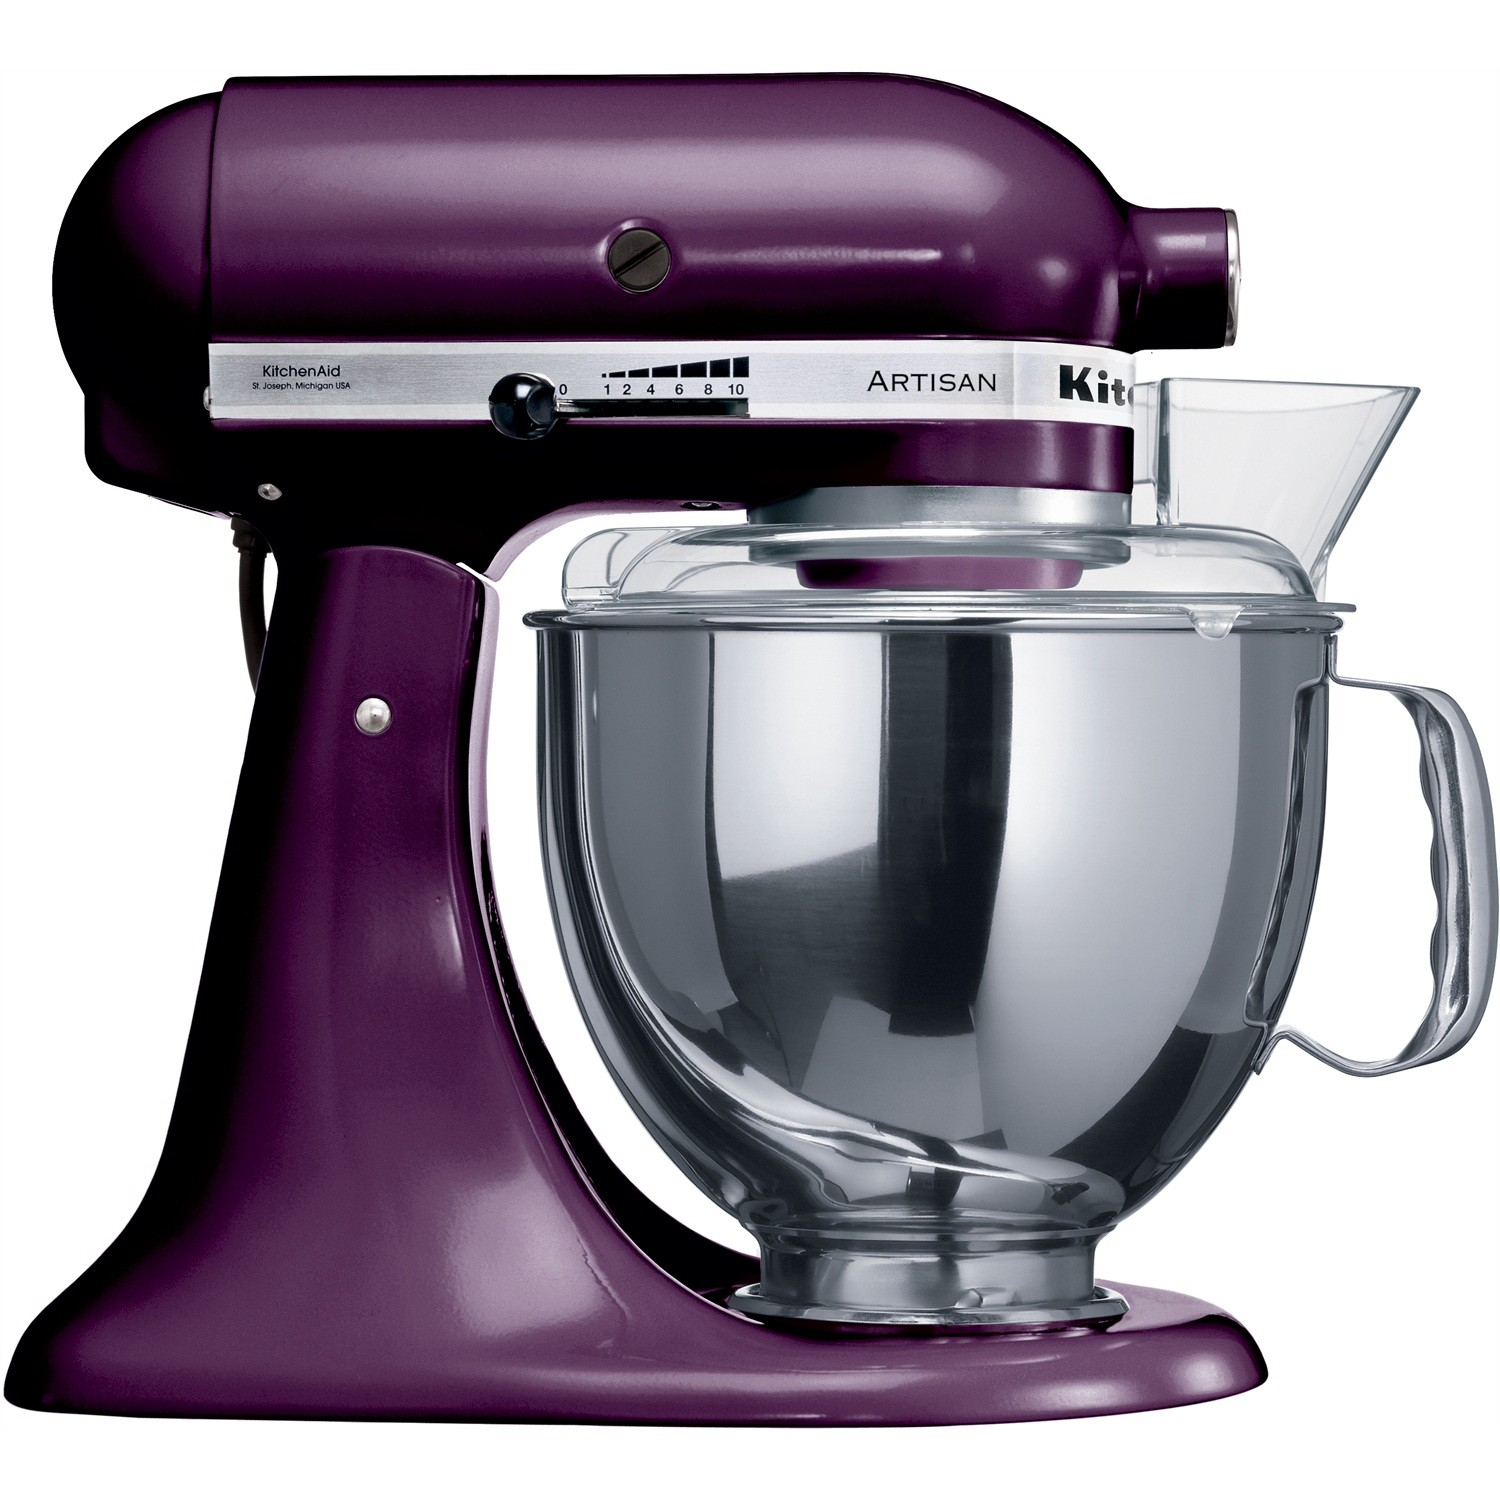 KitchenAid Artisan mixer 5KSM150PS pruim